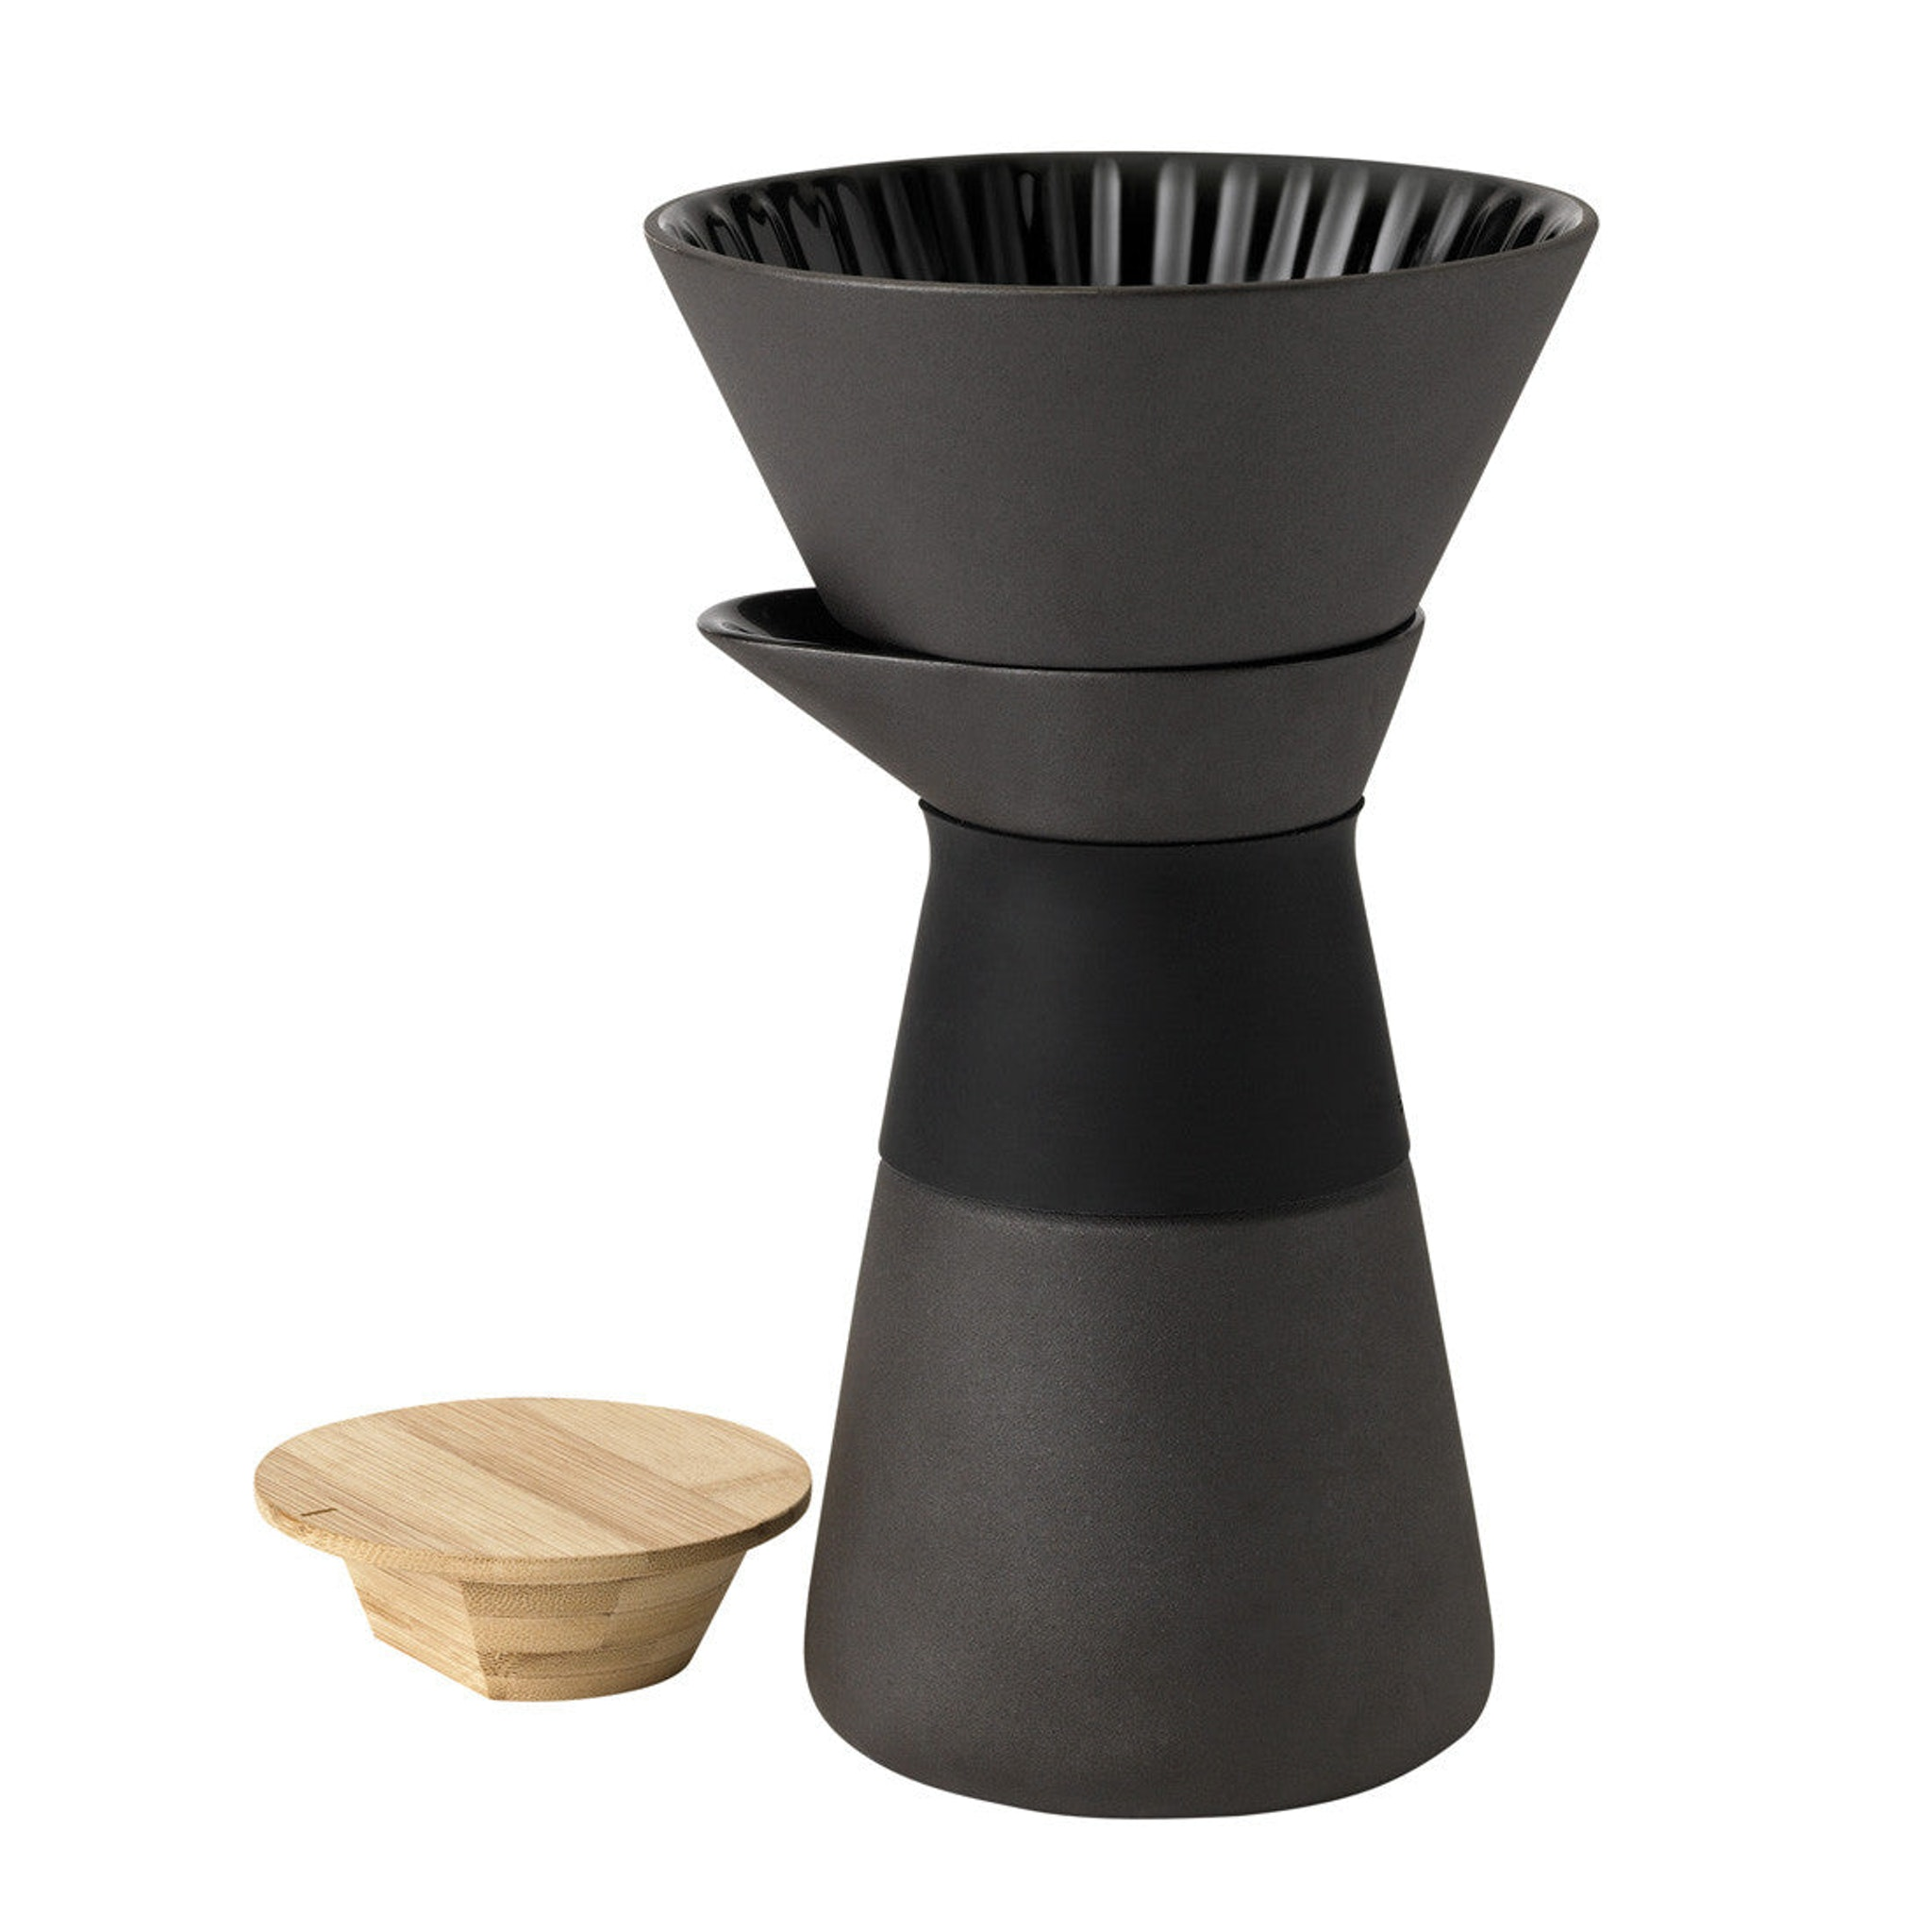 Theo Coffee Maker by Francis Cayouette